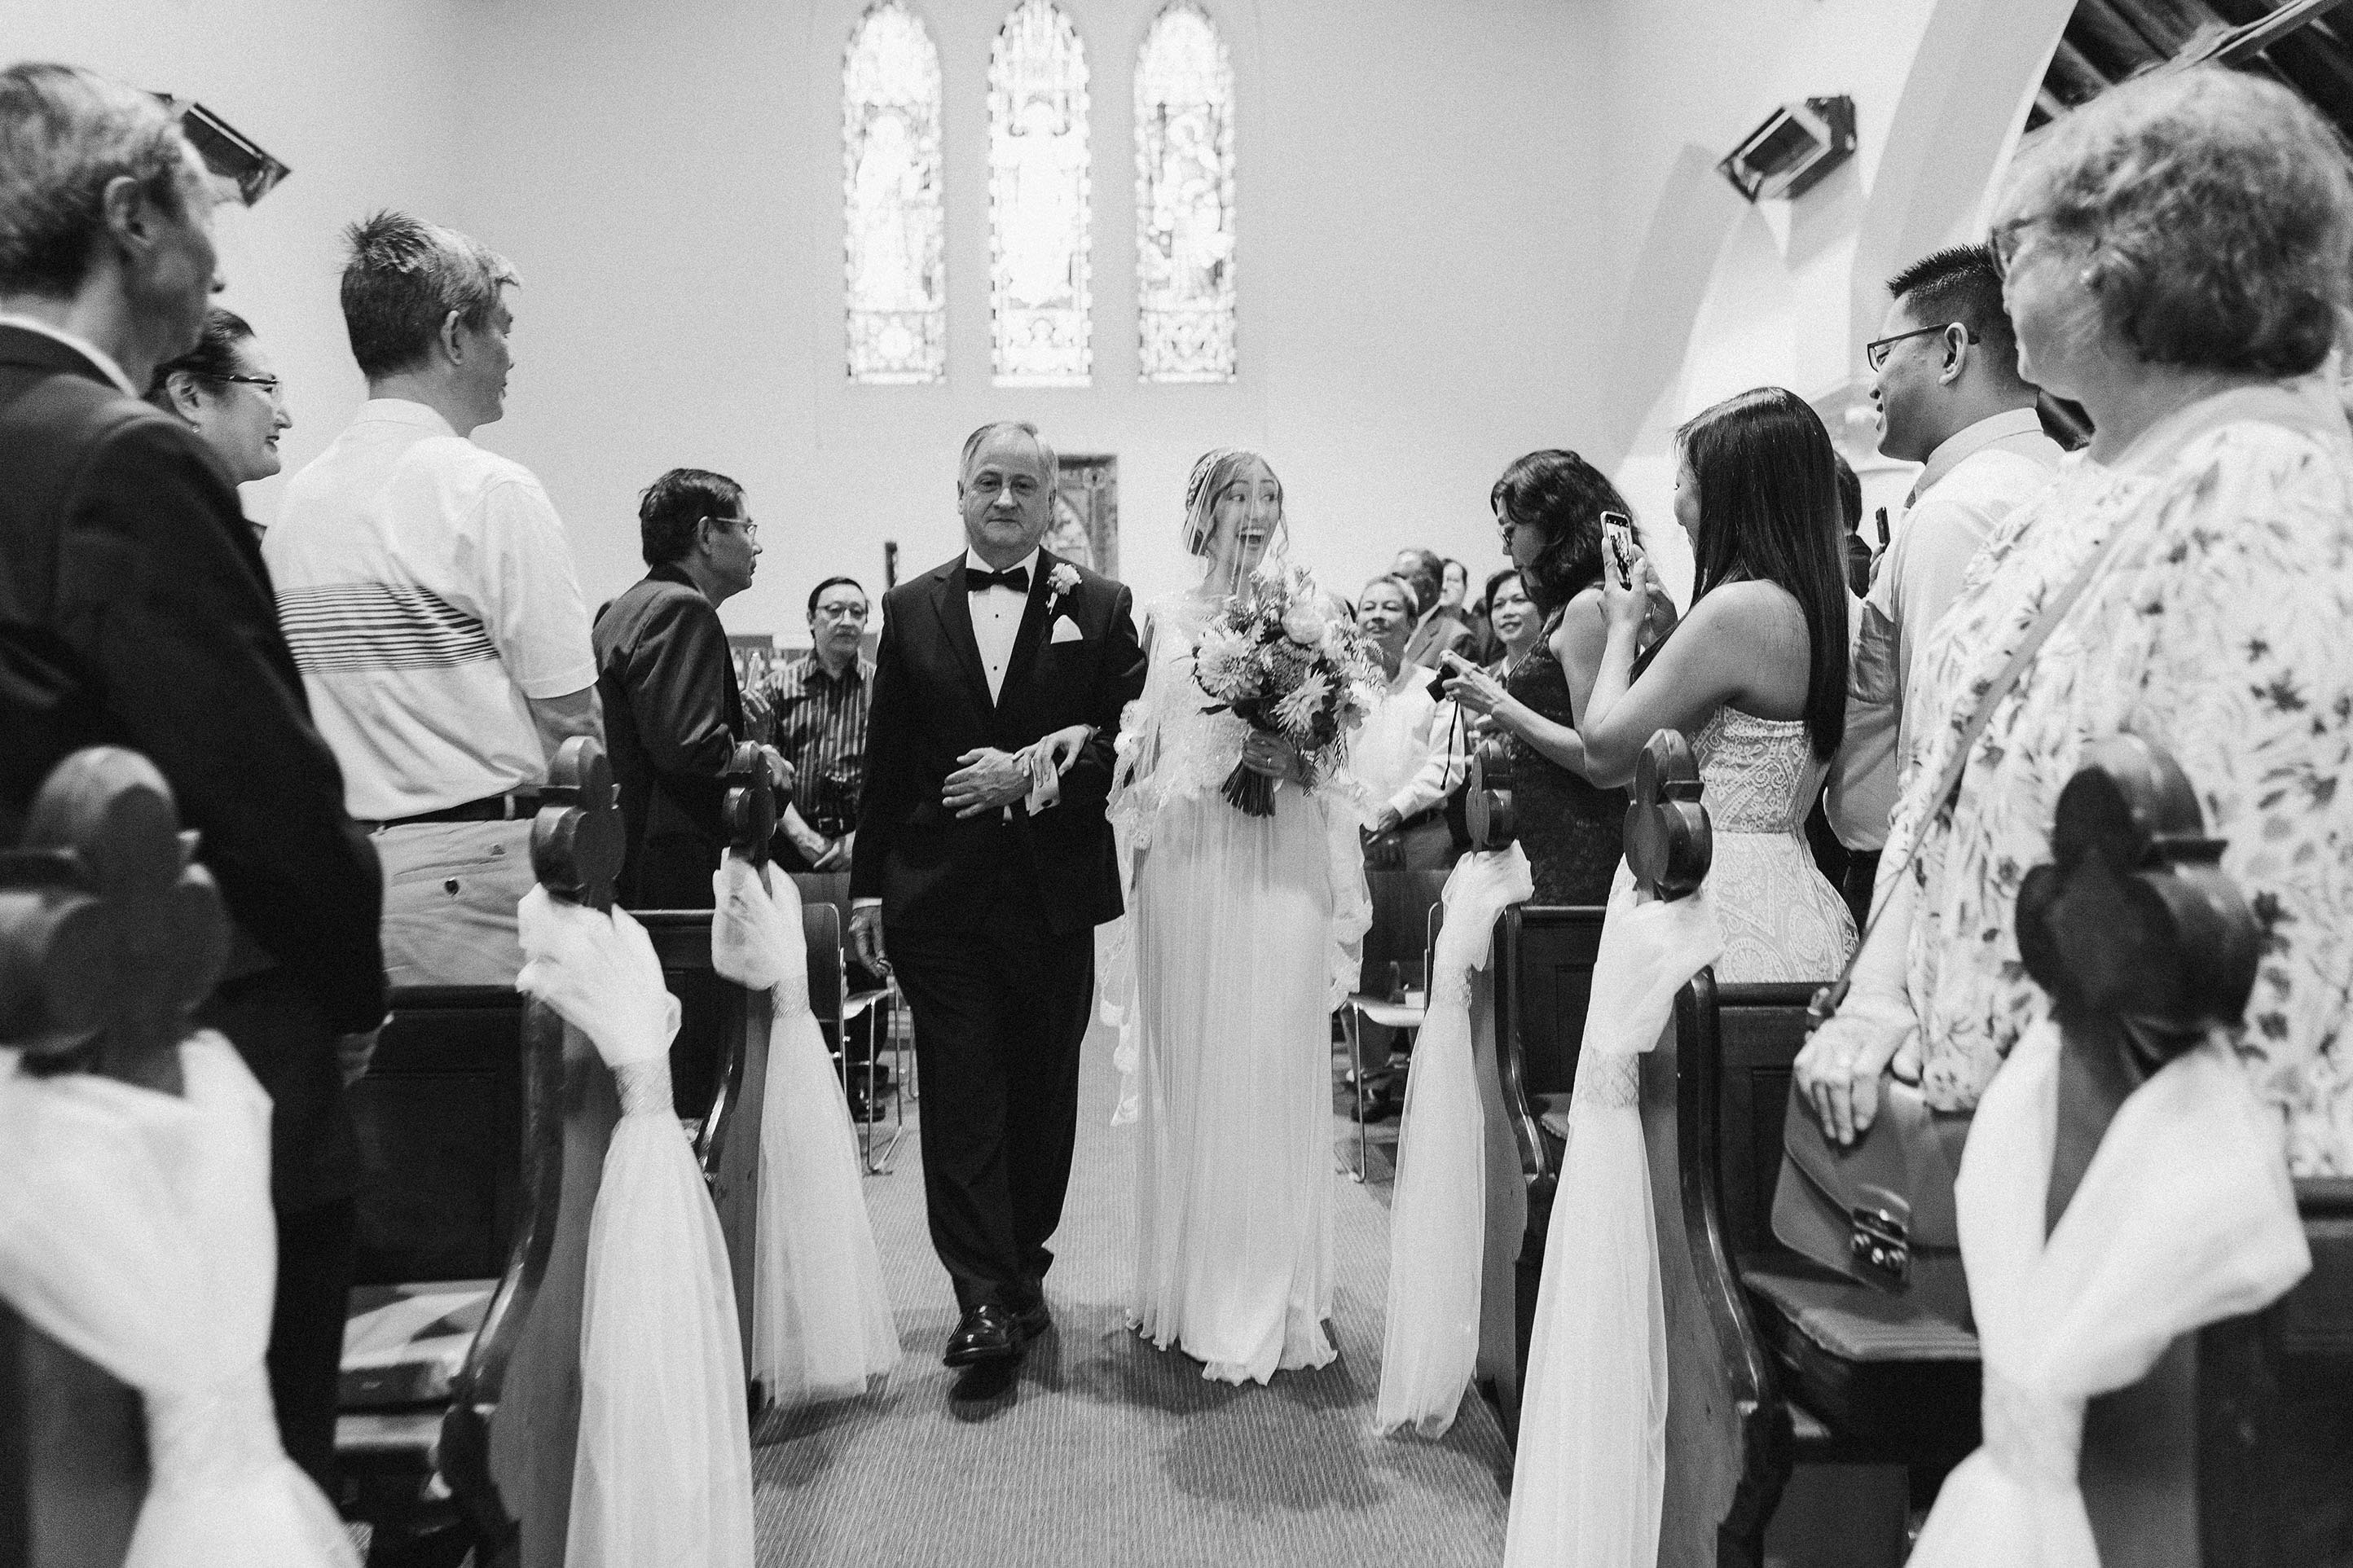 Melbourne-caufield-north-wedding-church-ceremony-bride-arrival